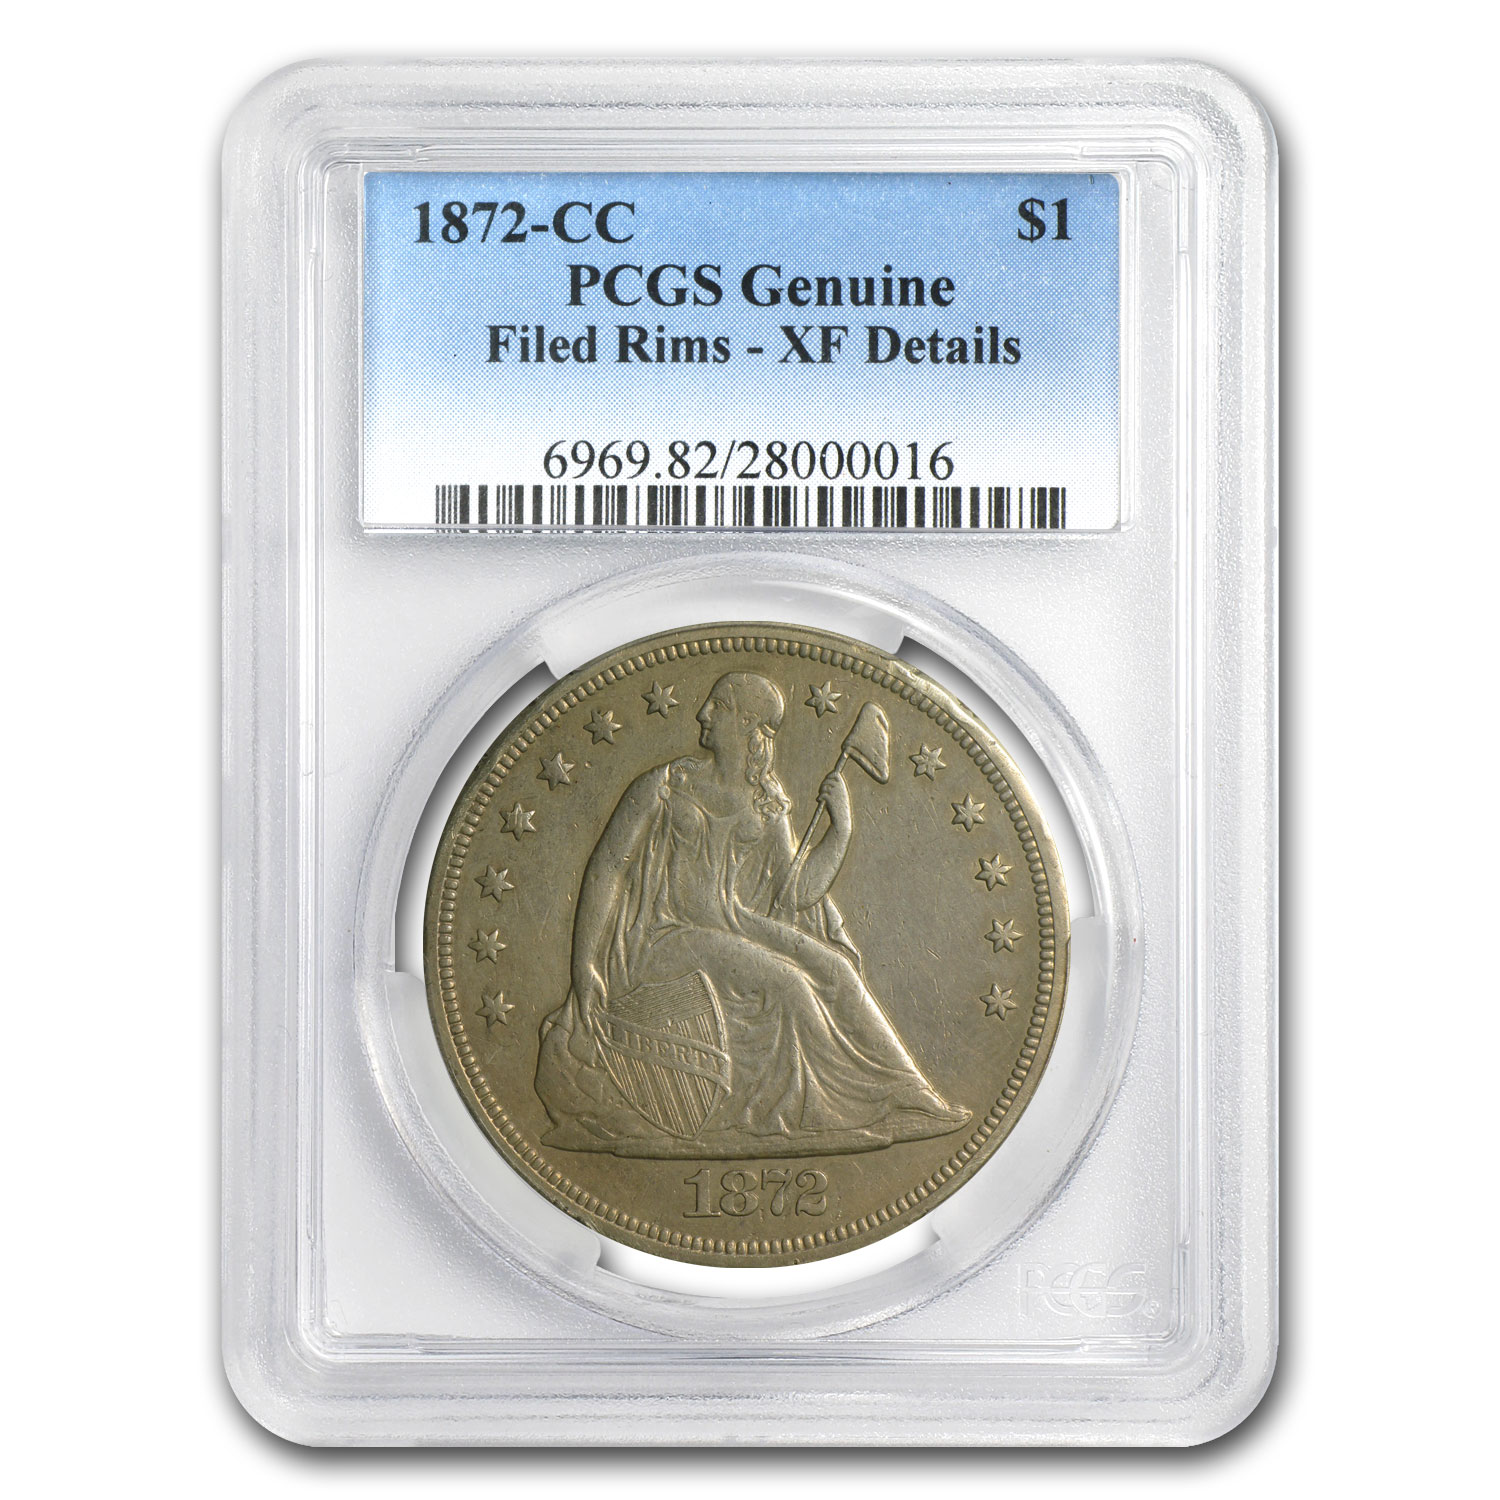 1872-CC Liberty Seated Dollar XF Details - Filed Rims PCGS